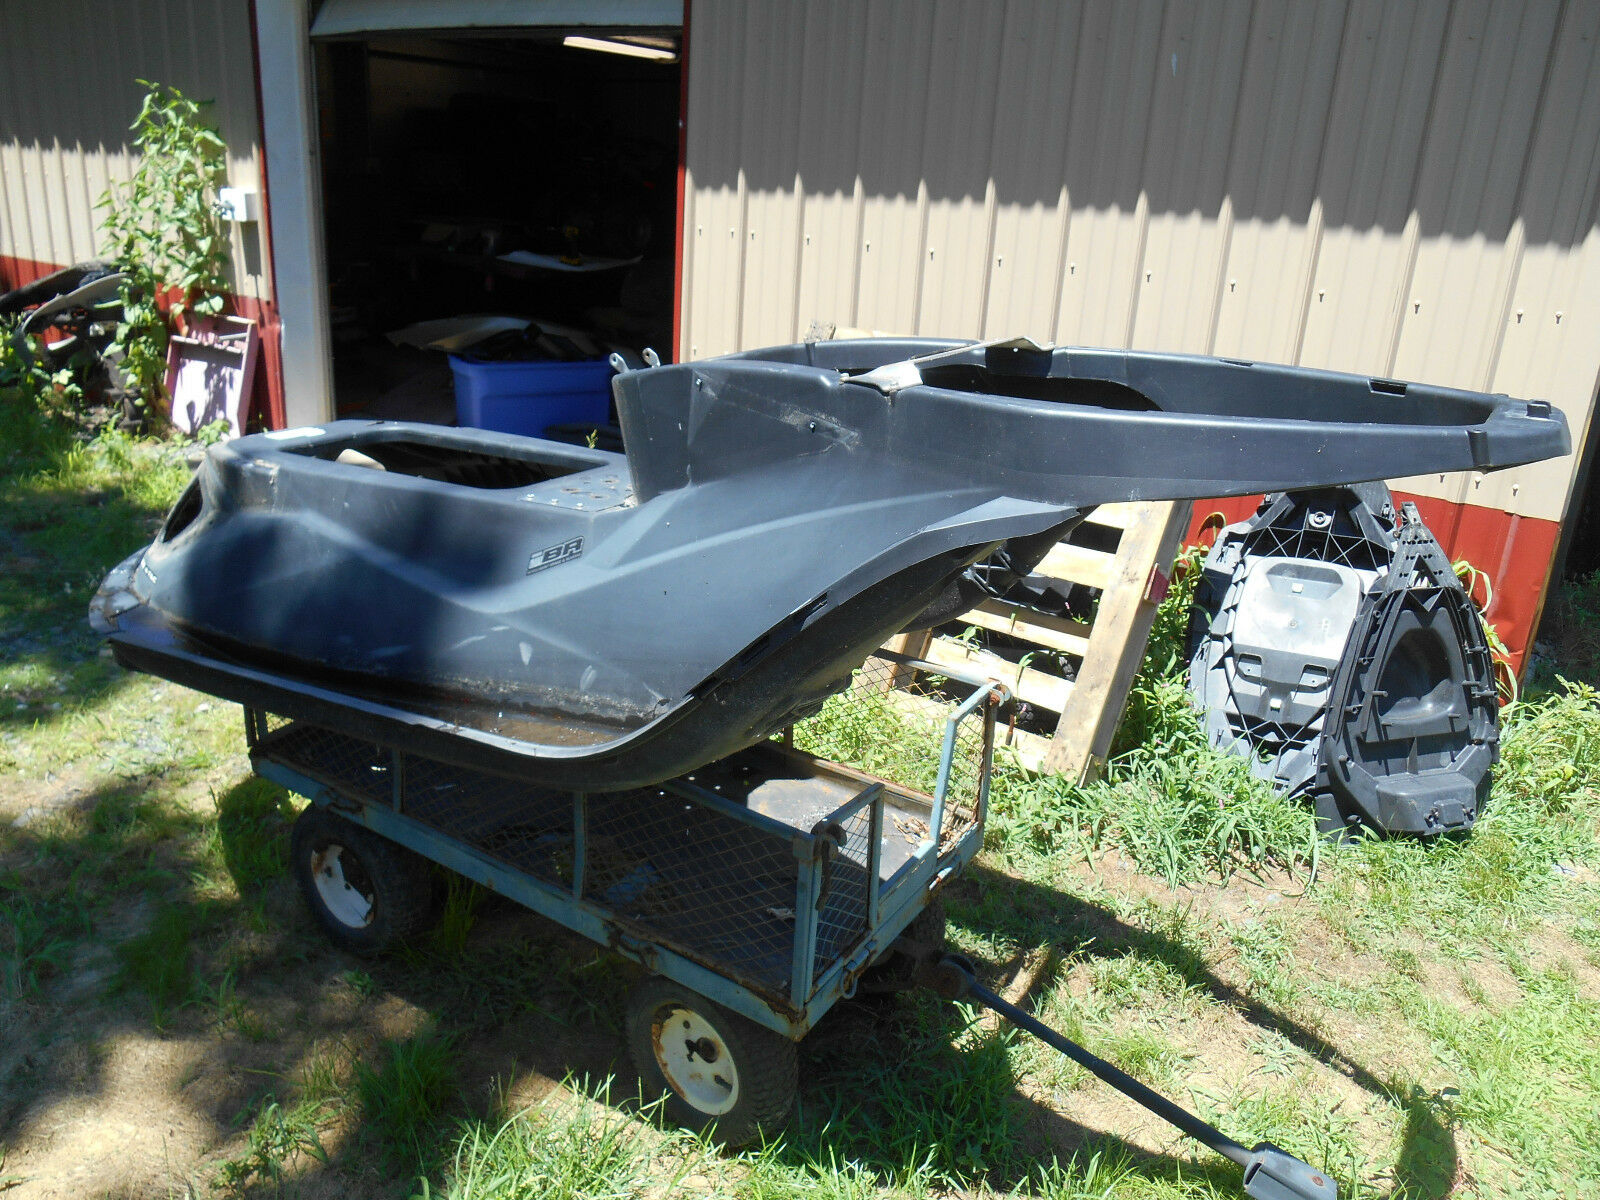 Sea Doo GTX IS RXT IS Upper Deck Assy hull floating gtxis rxtis 215 260 255